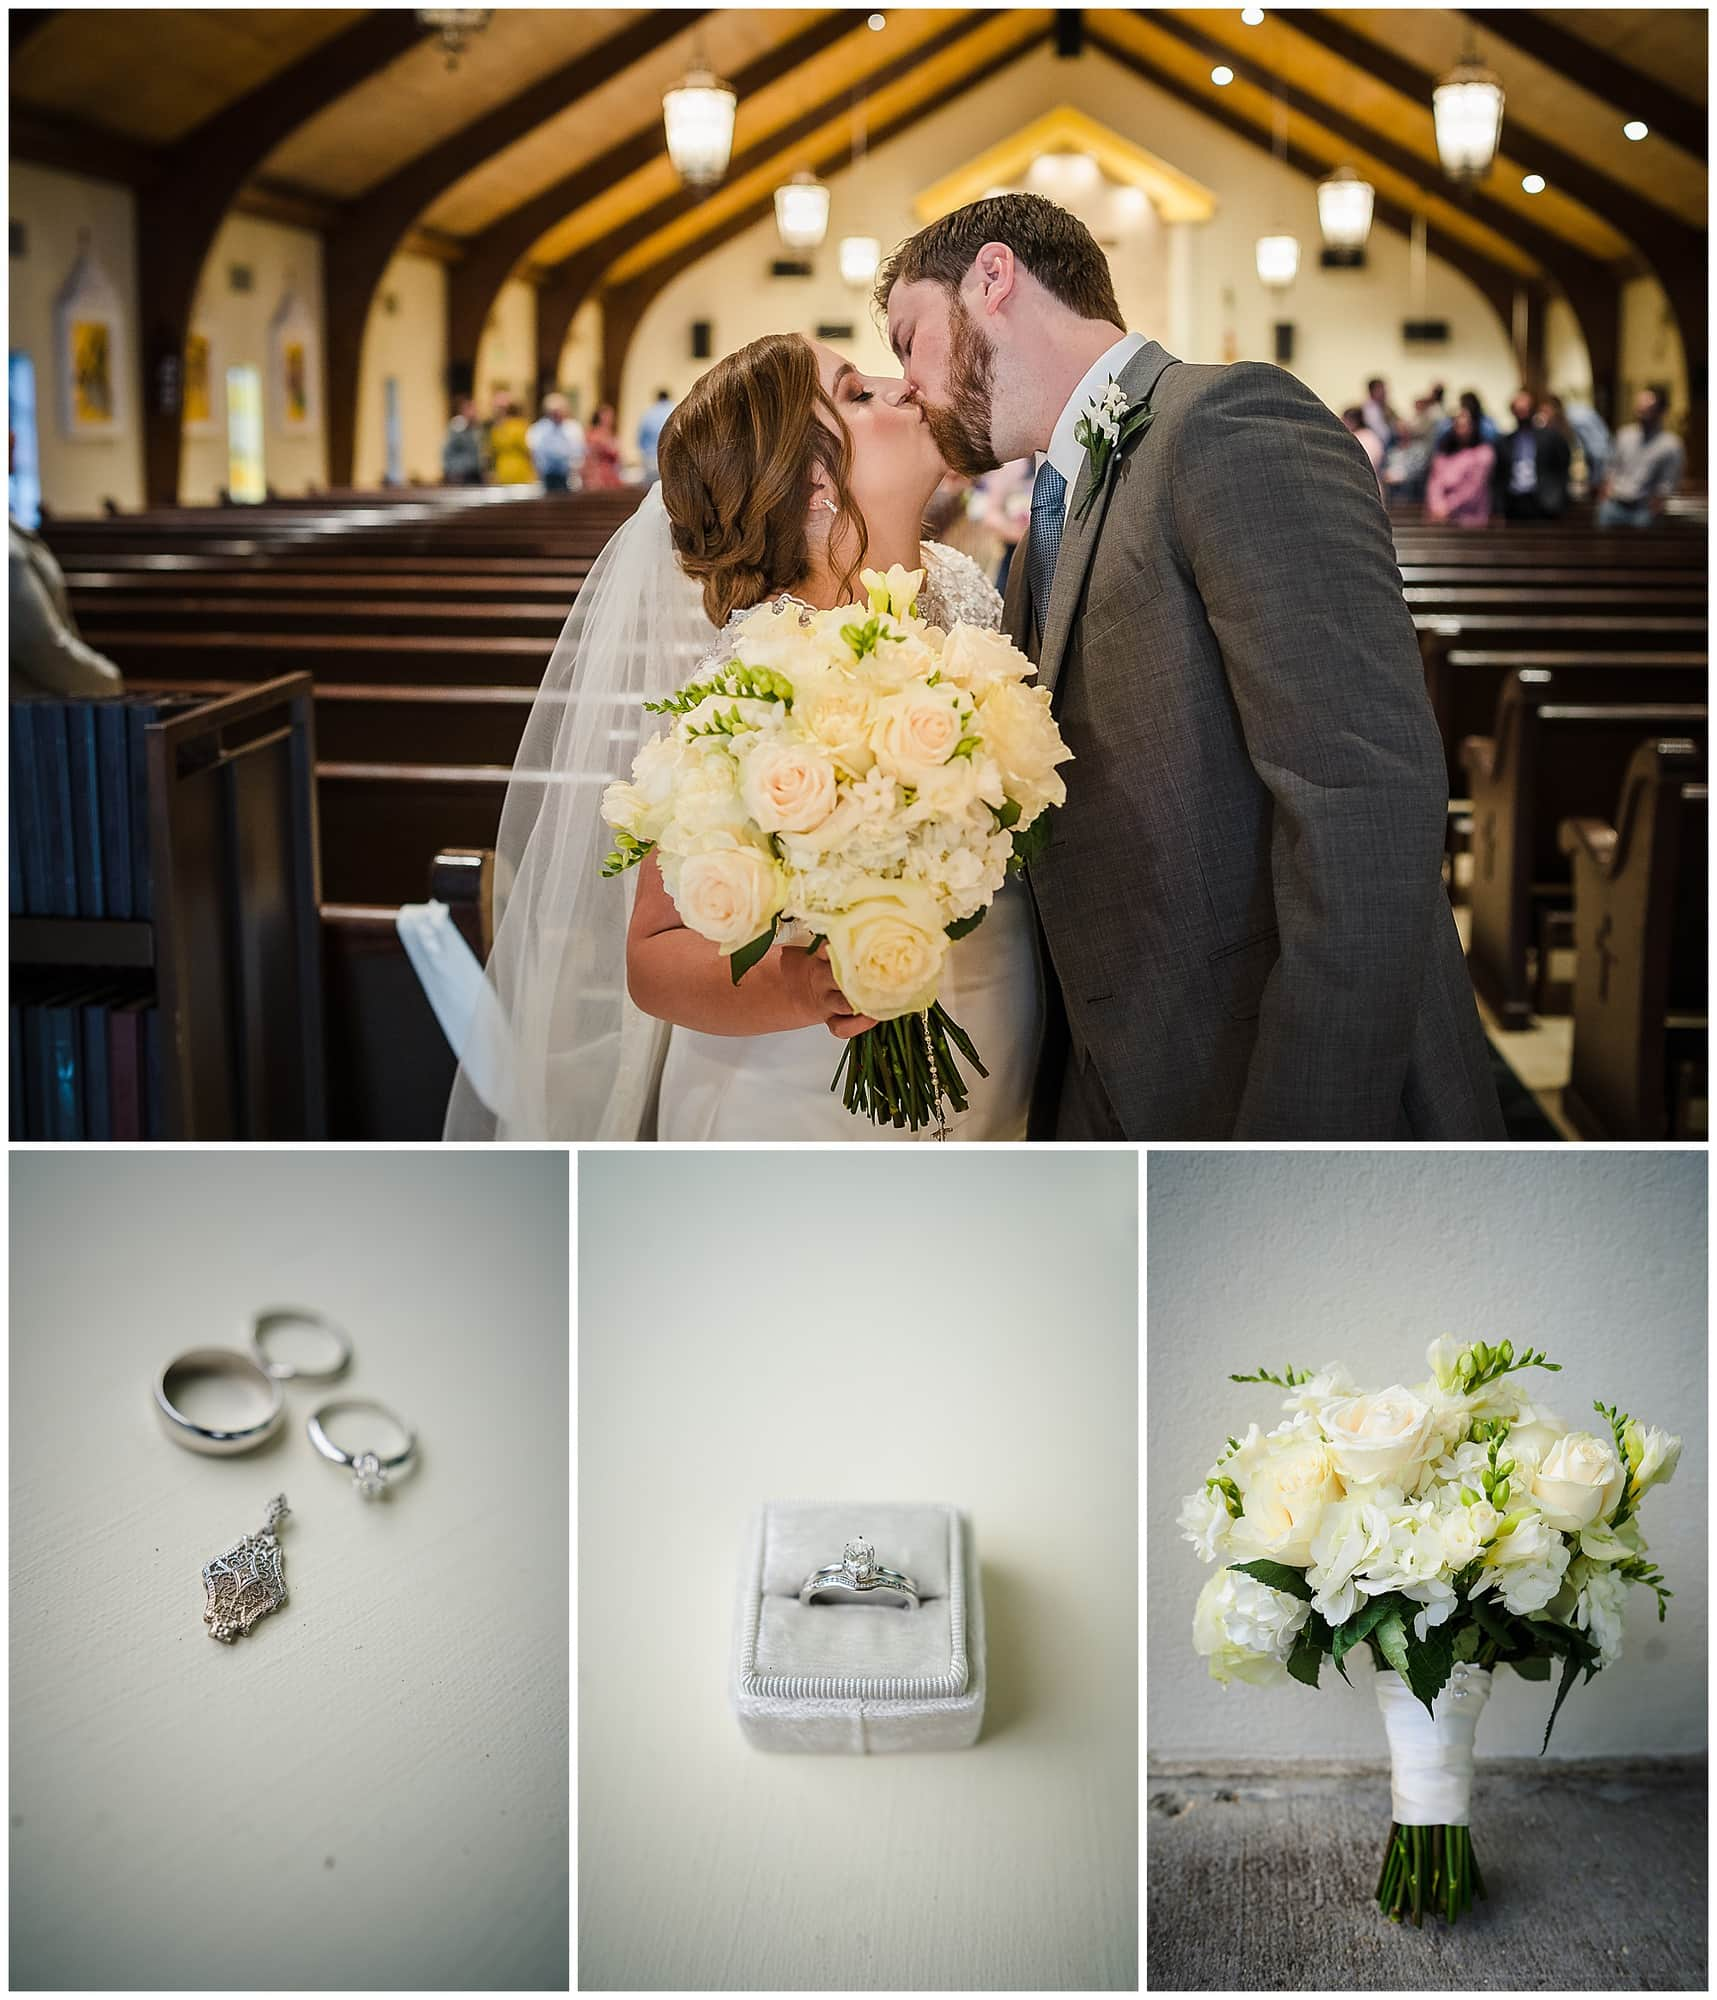 couple kissing in a church and wedding details